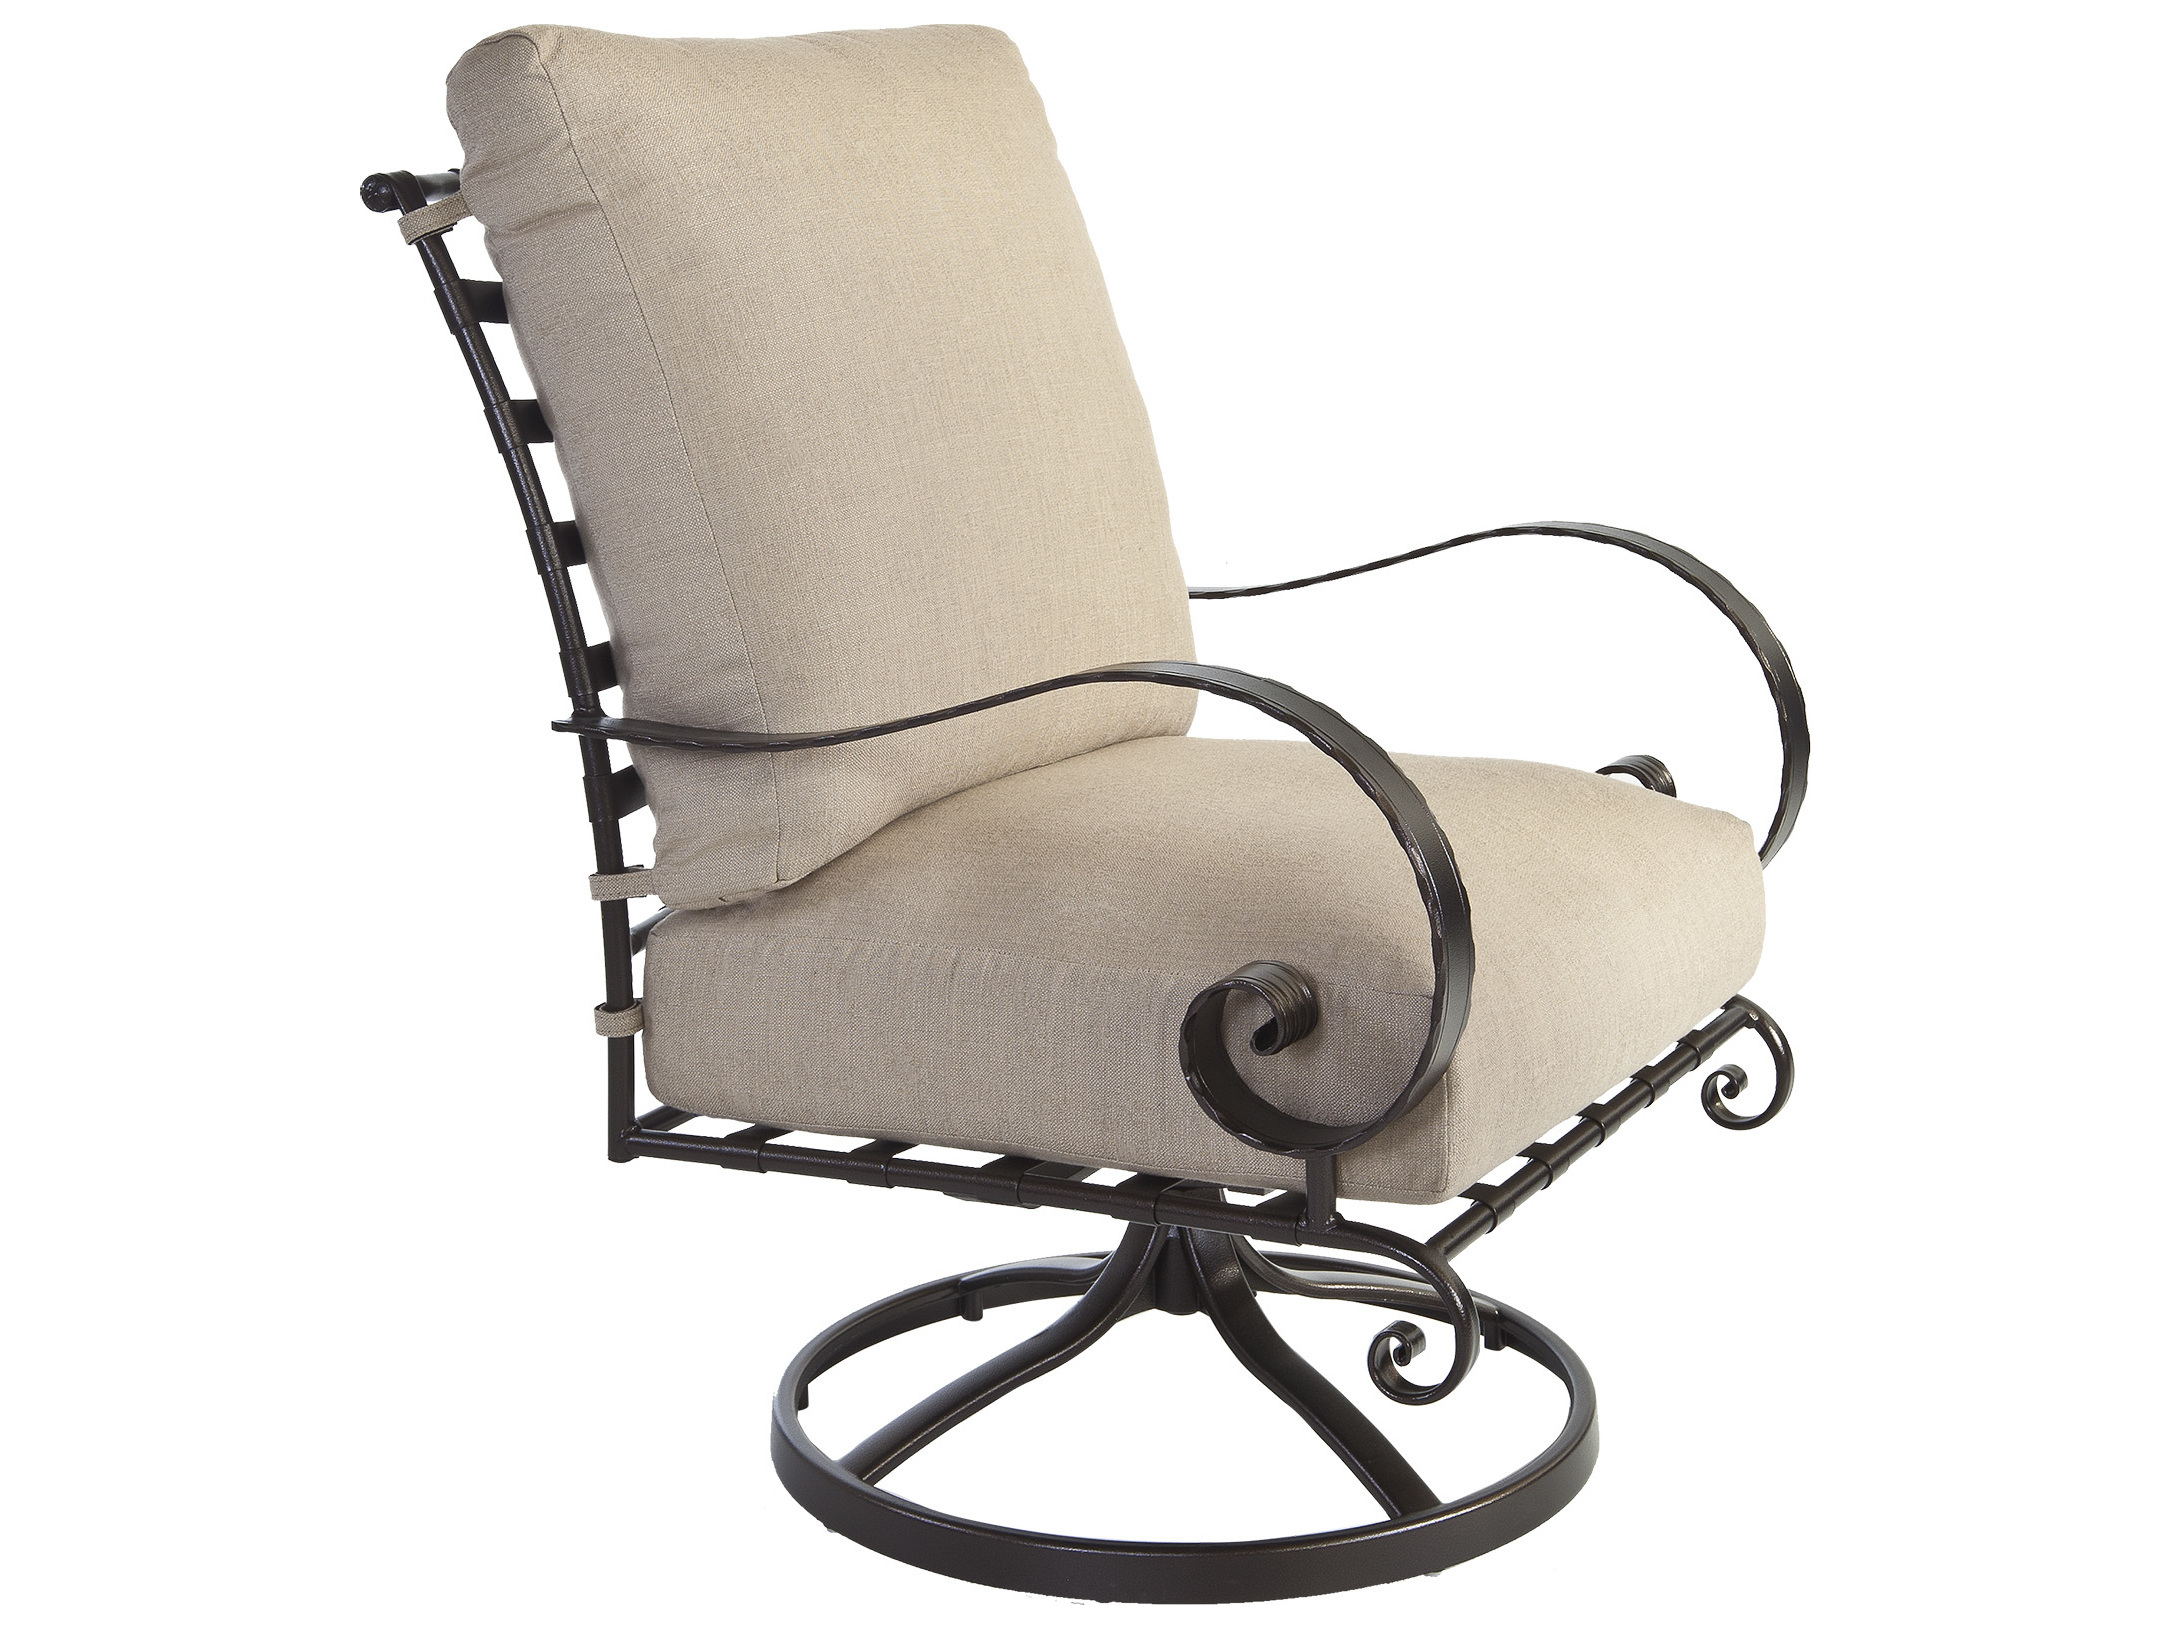 wrought iron rocking chair design inspiration ow lee quick ship classico swivel rocker